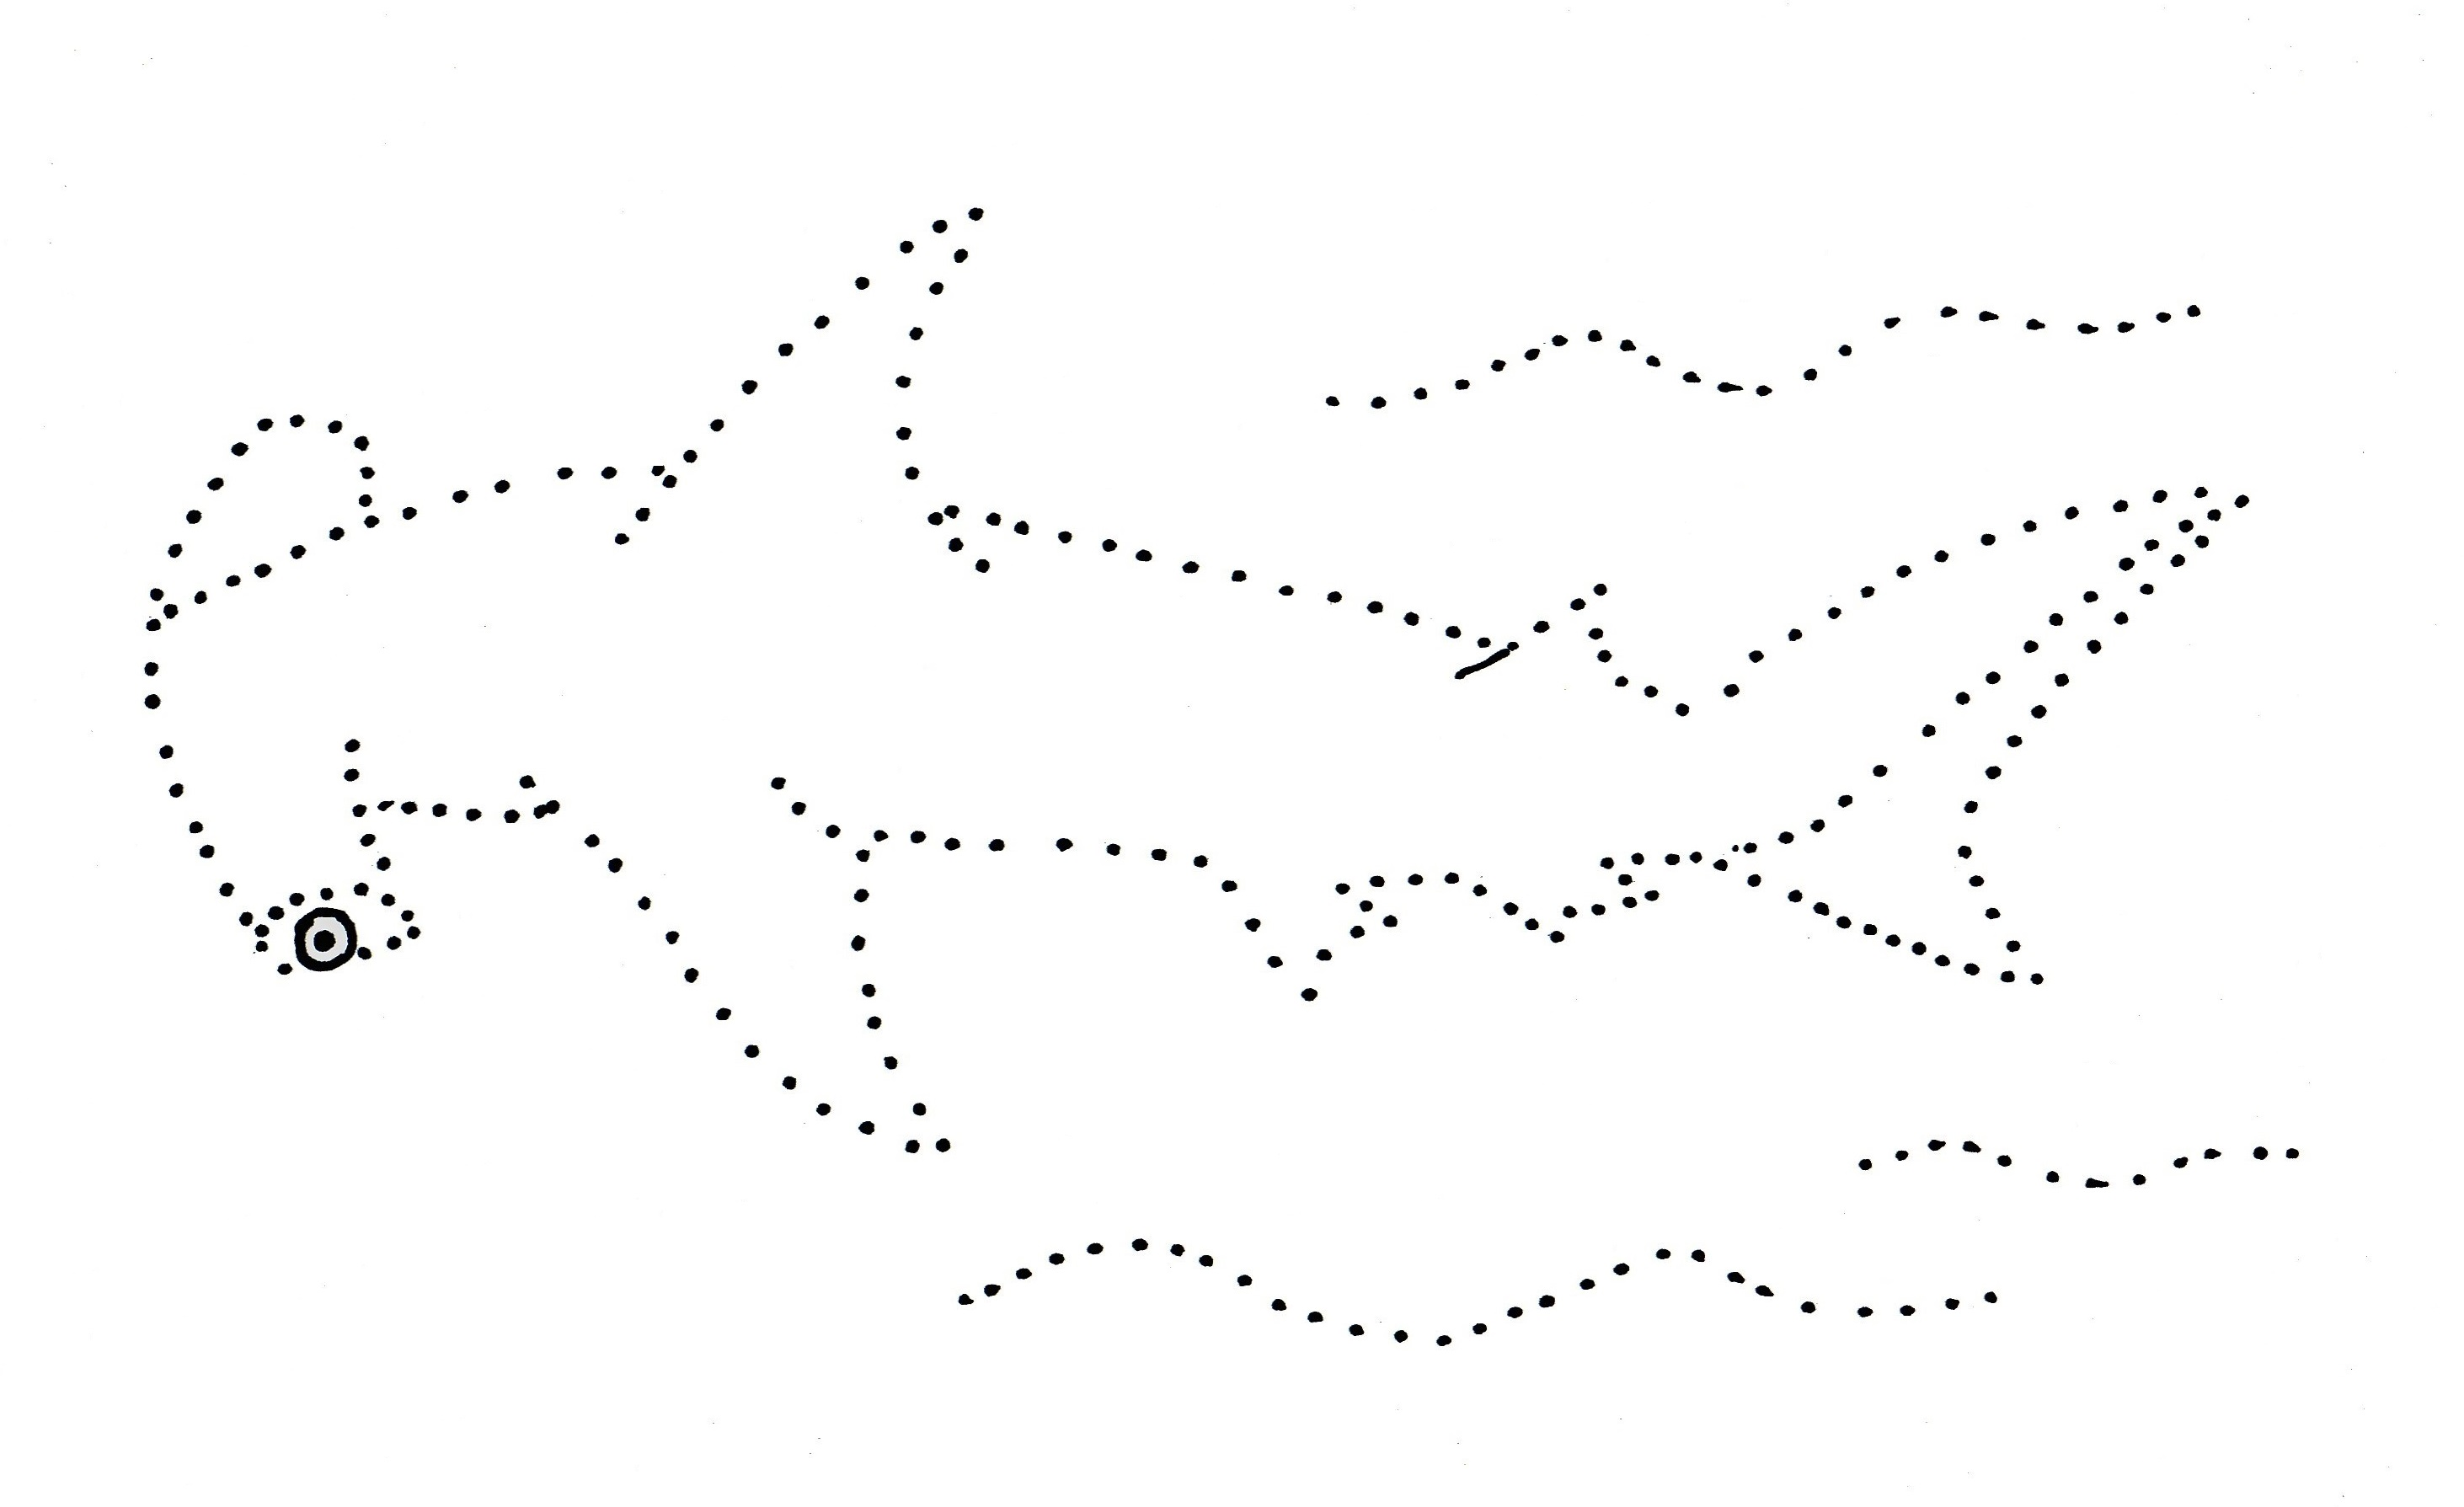 Hammerhead Shark Dot Drawing - Samantha Bell